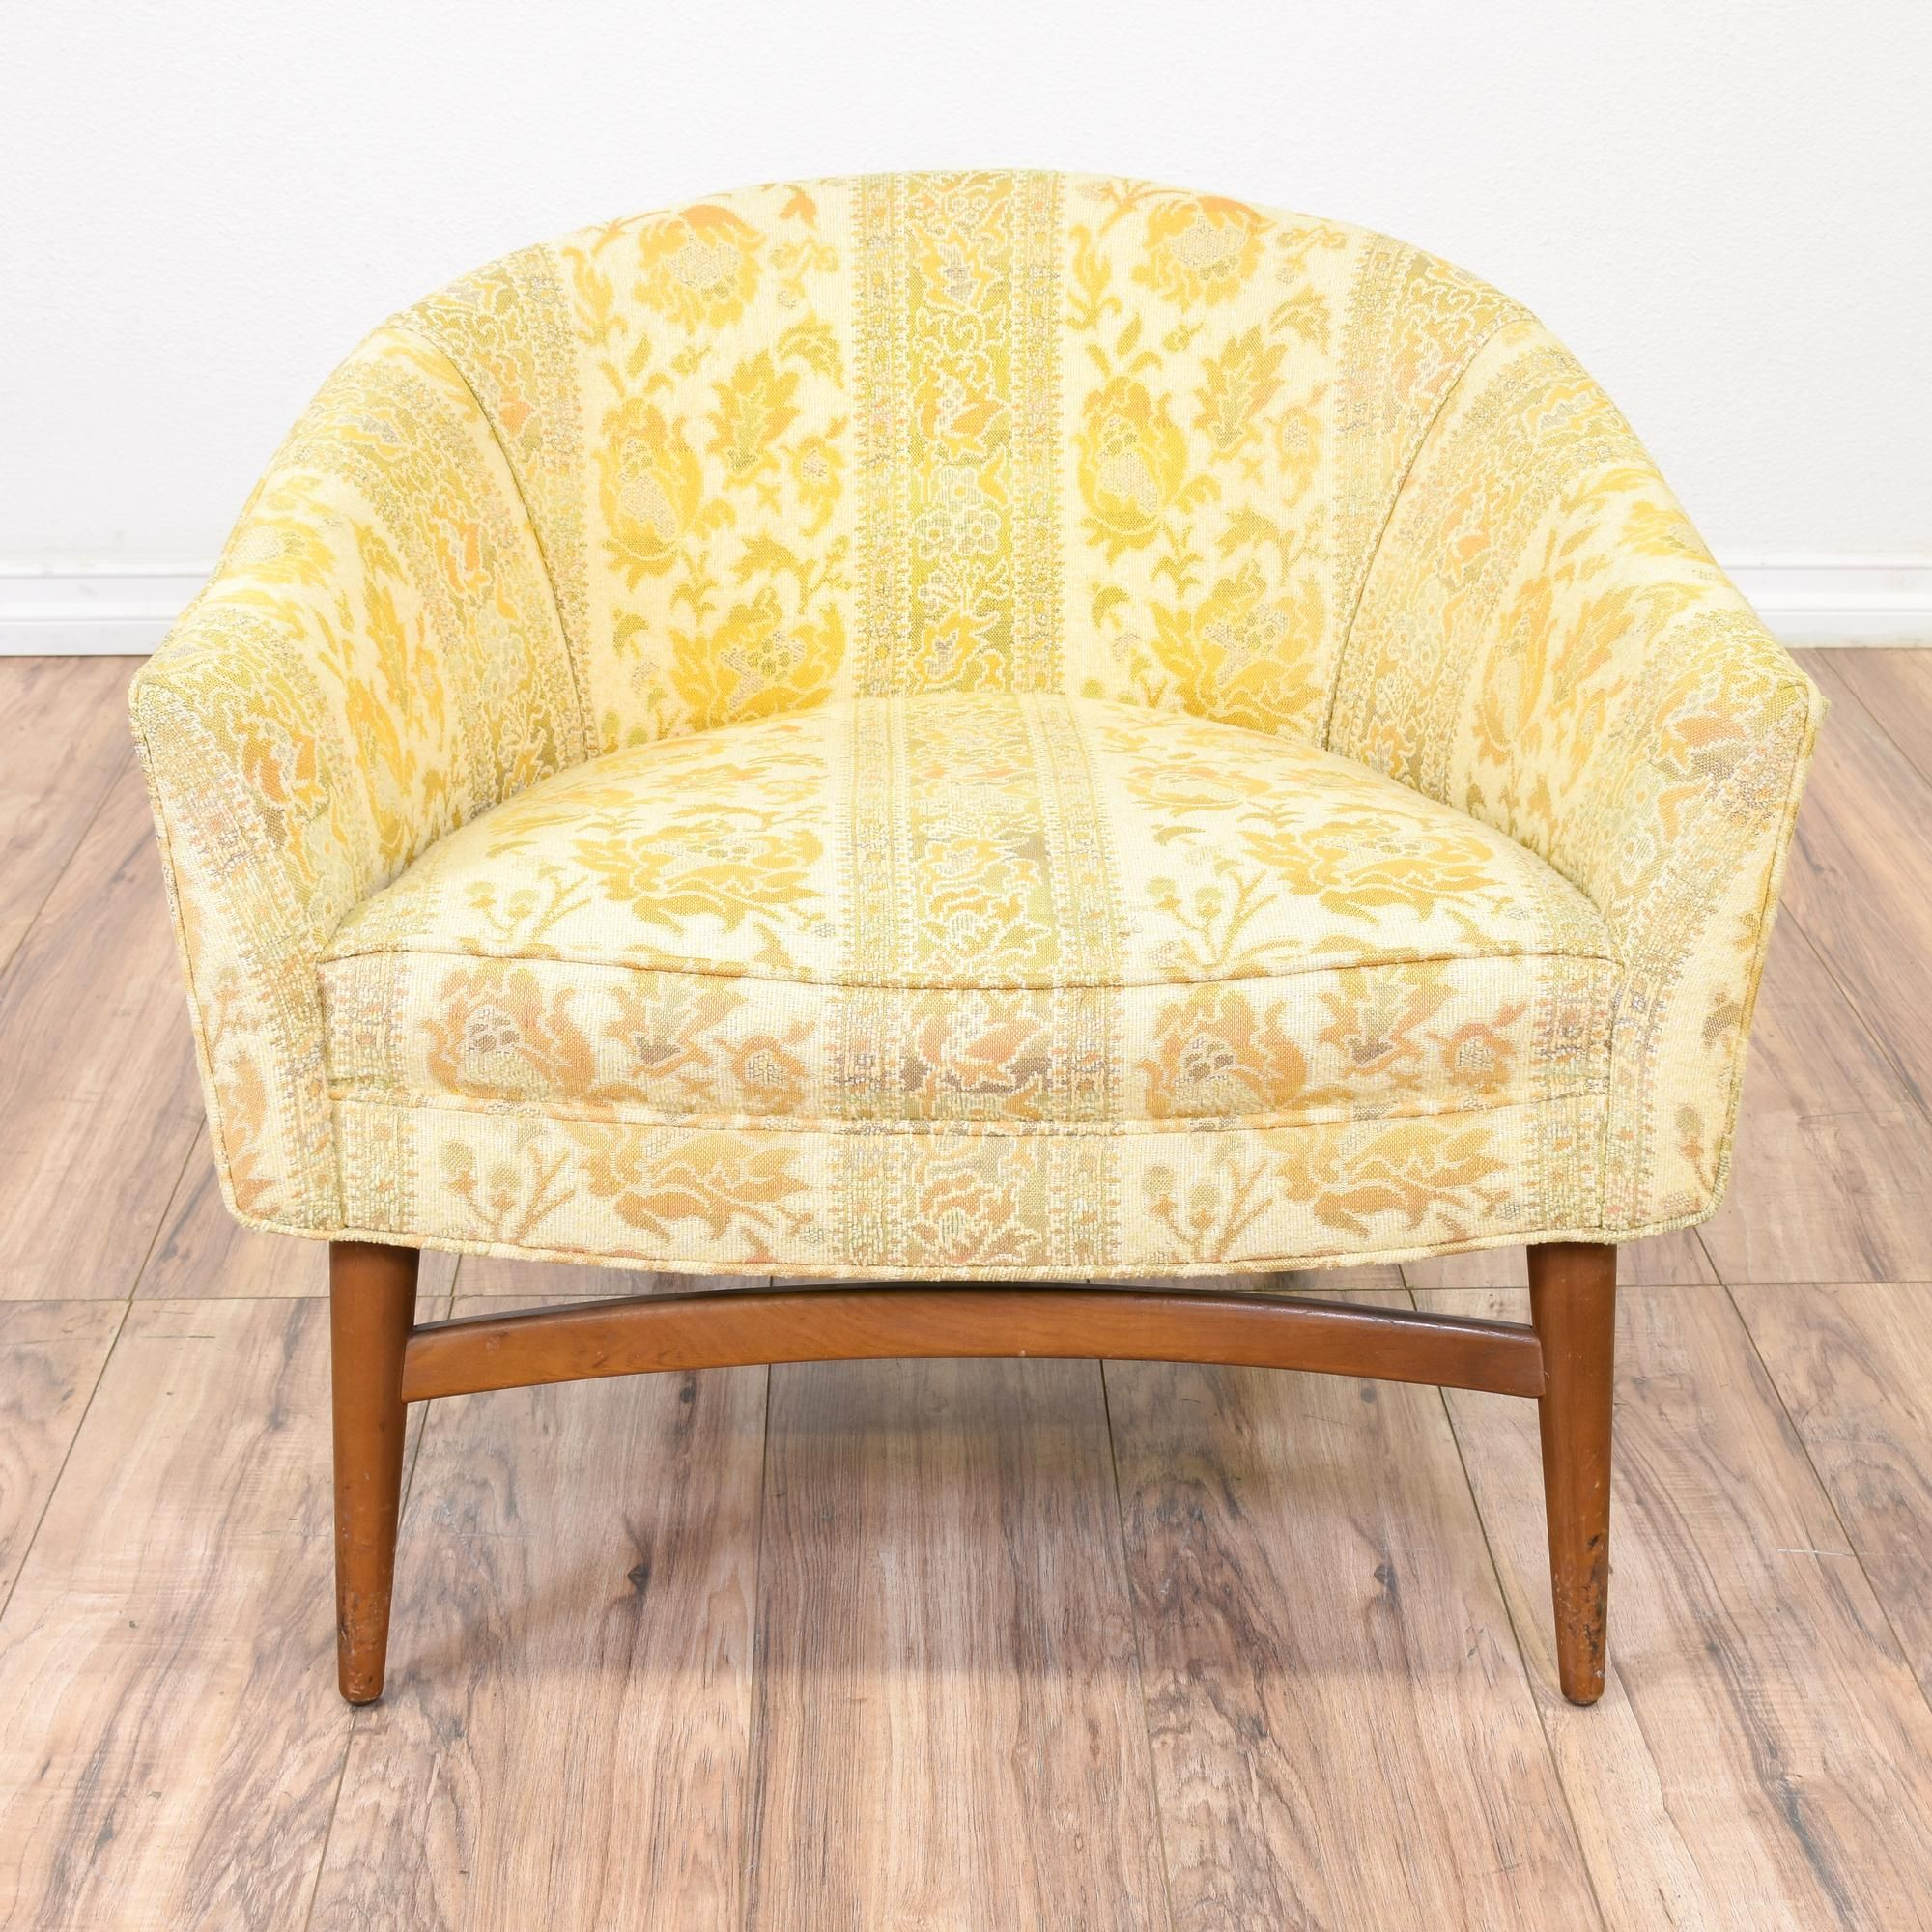 This Mid Century Modern Barrel Chair Is Upholstered In A Durable Cream And  Yellow Green Floral